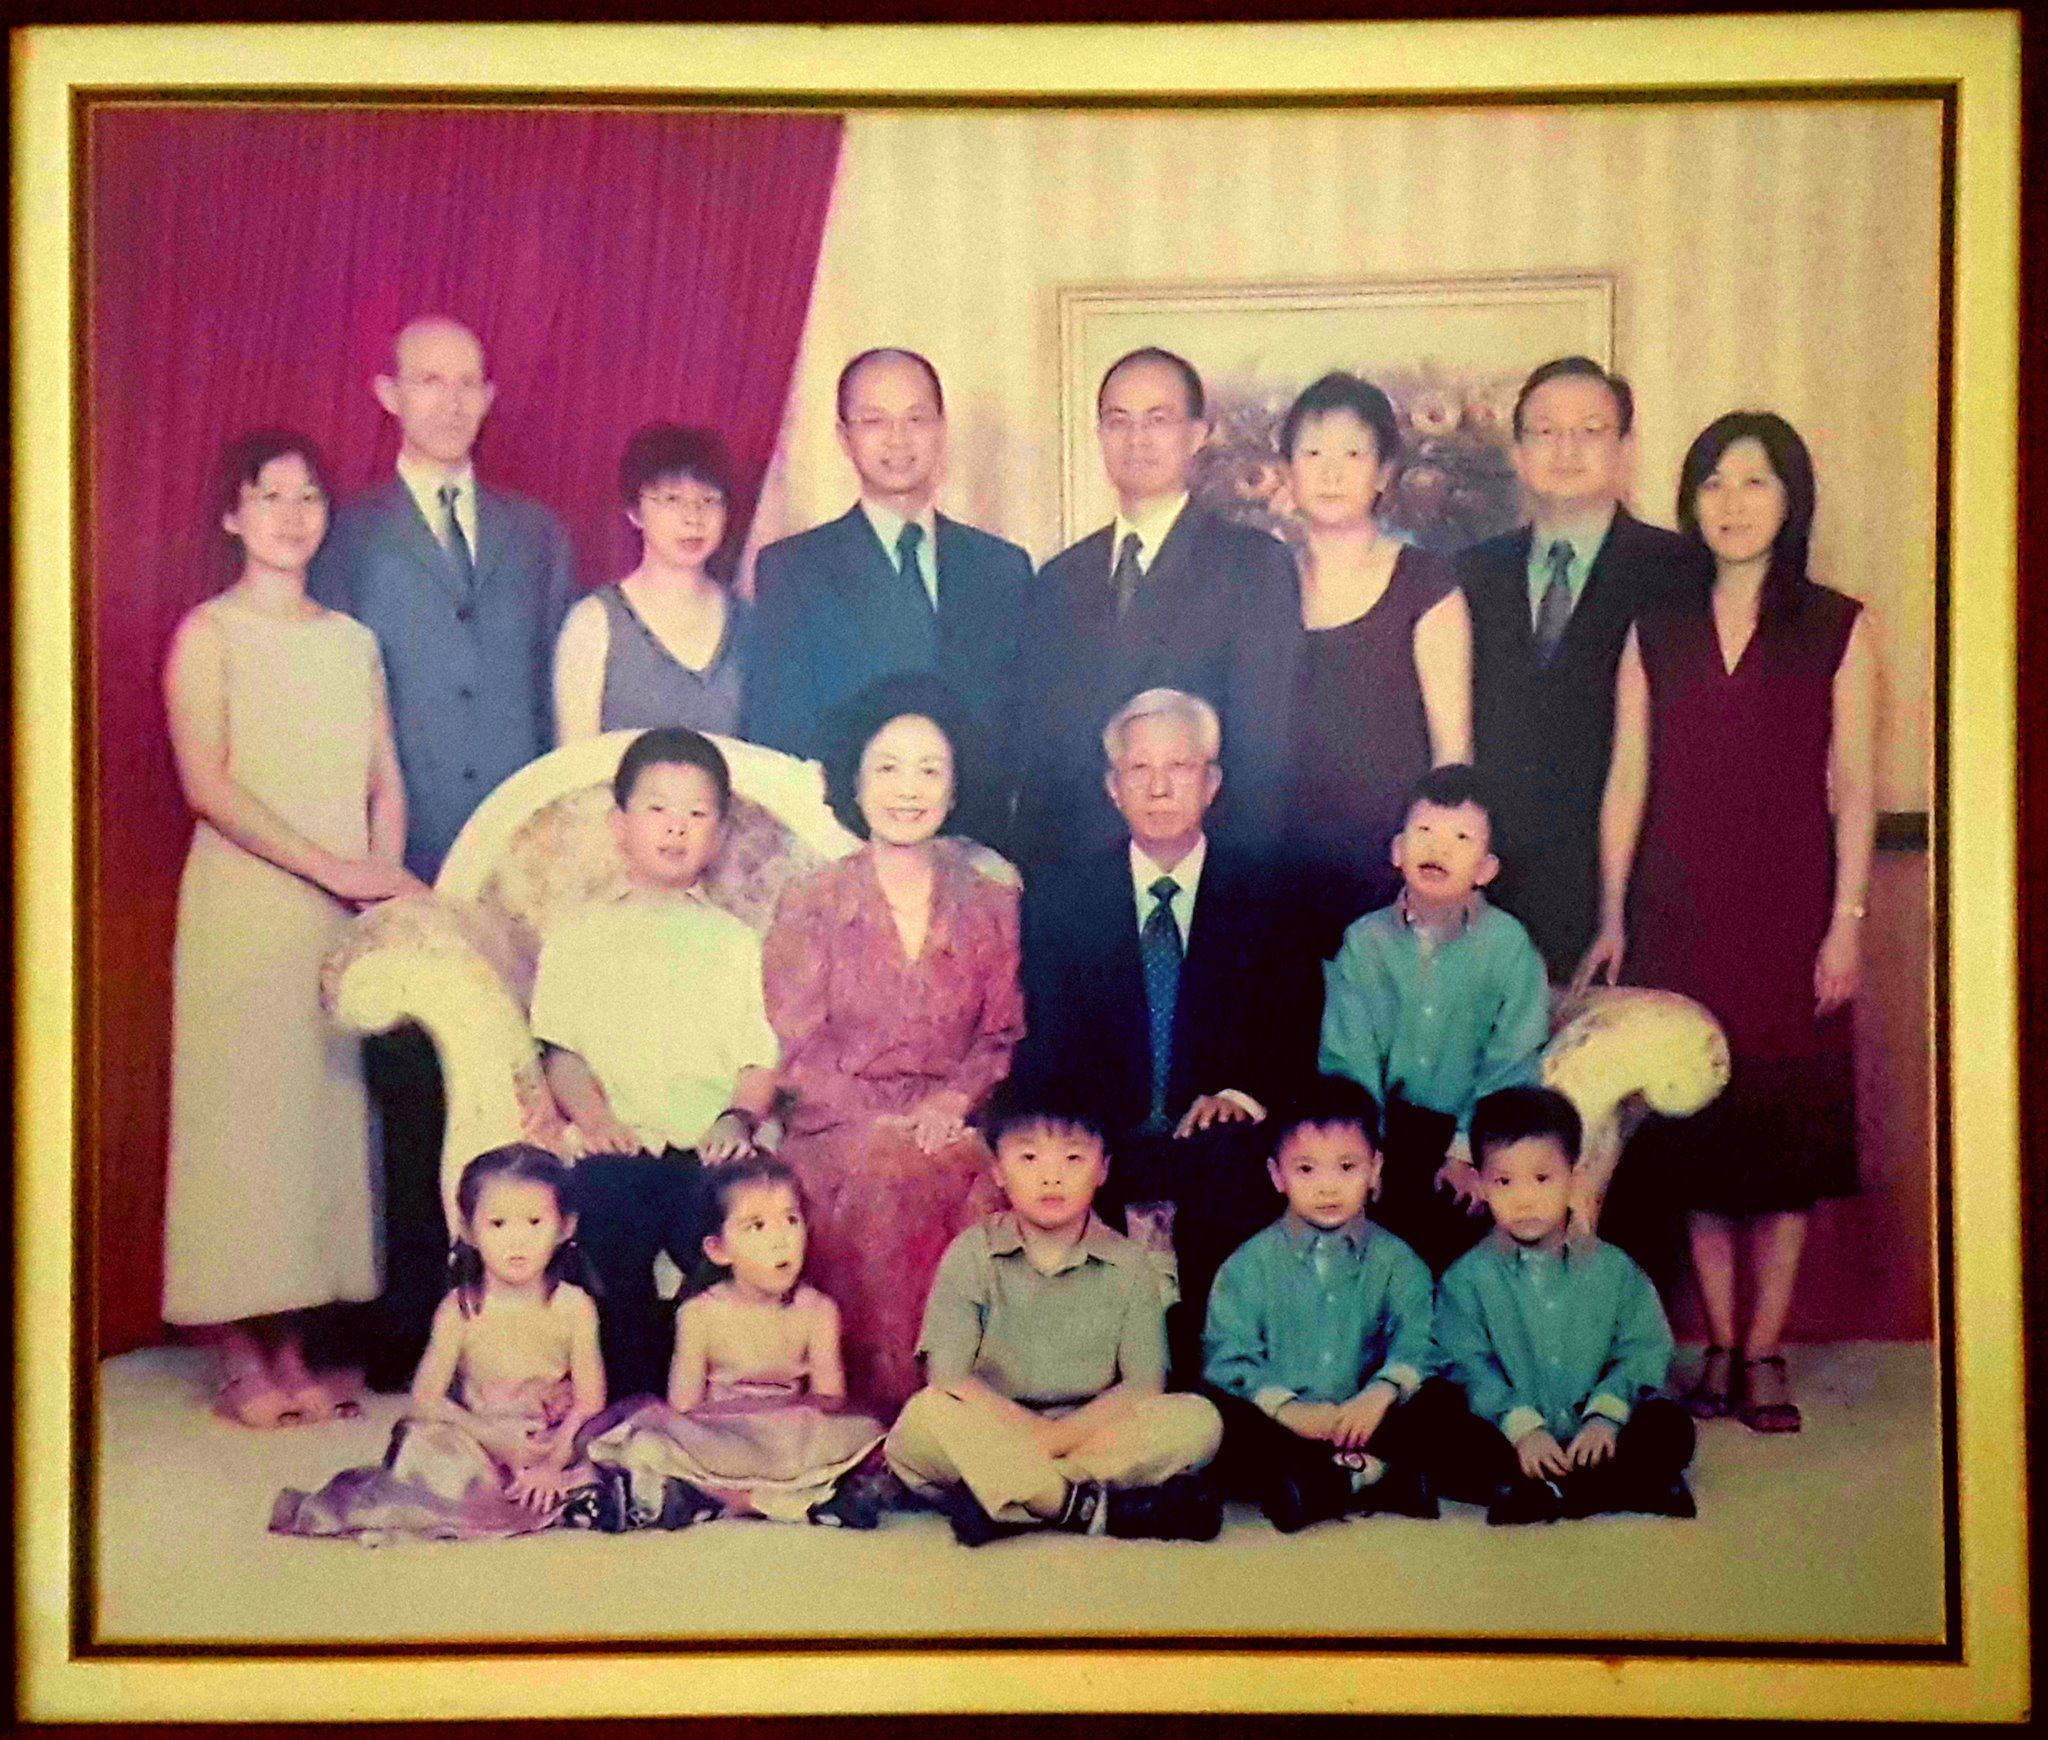 A family picture. I'm directly central in the bottom row, with my paternal grandparents above me.